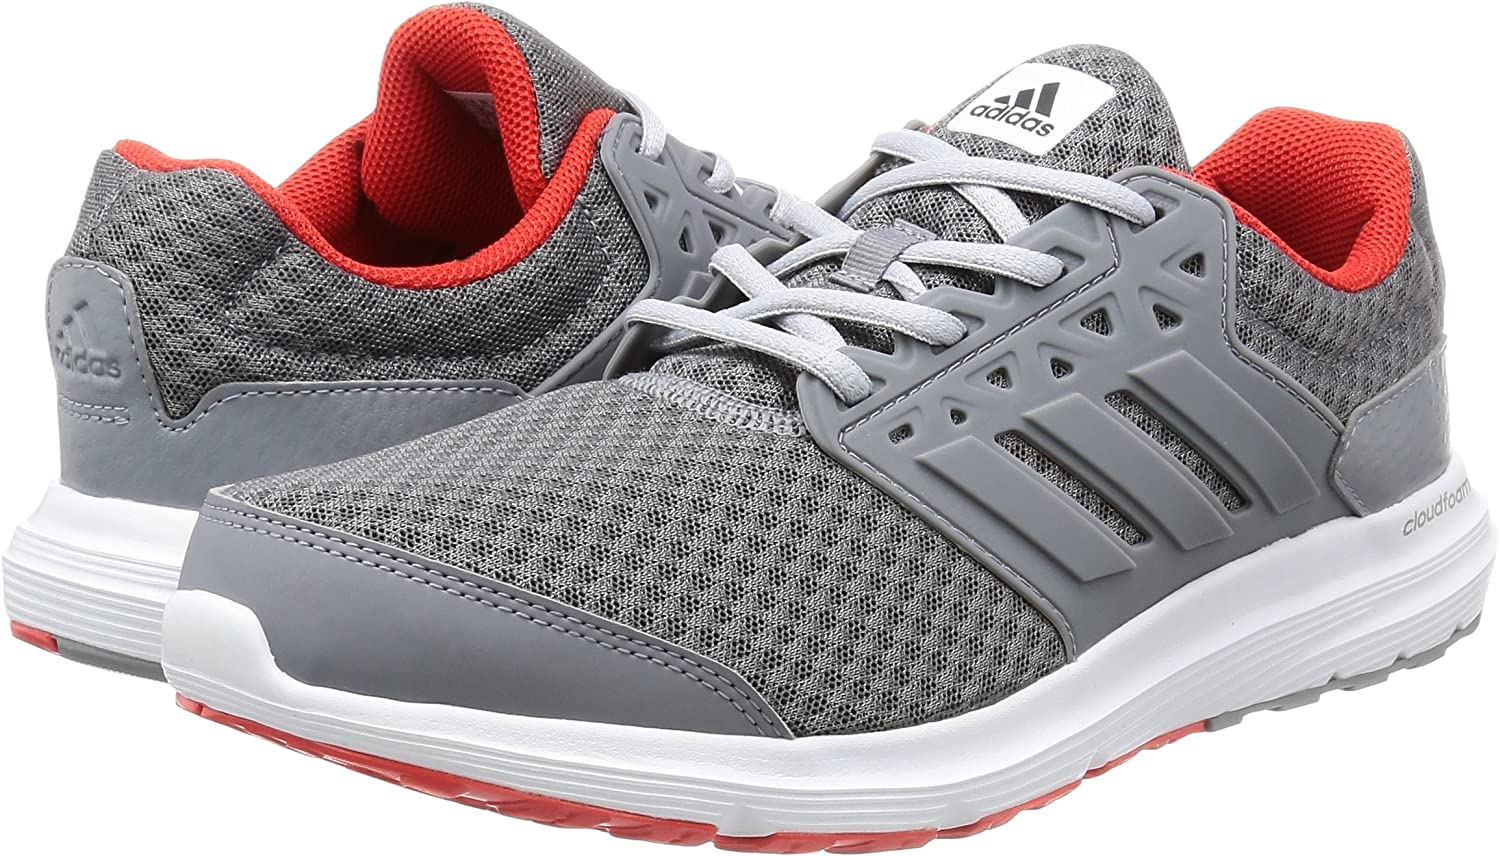 adidas Chaussures Galaxy 3 Gris Running Homme: